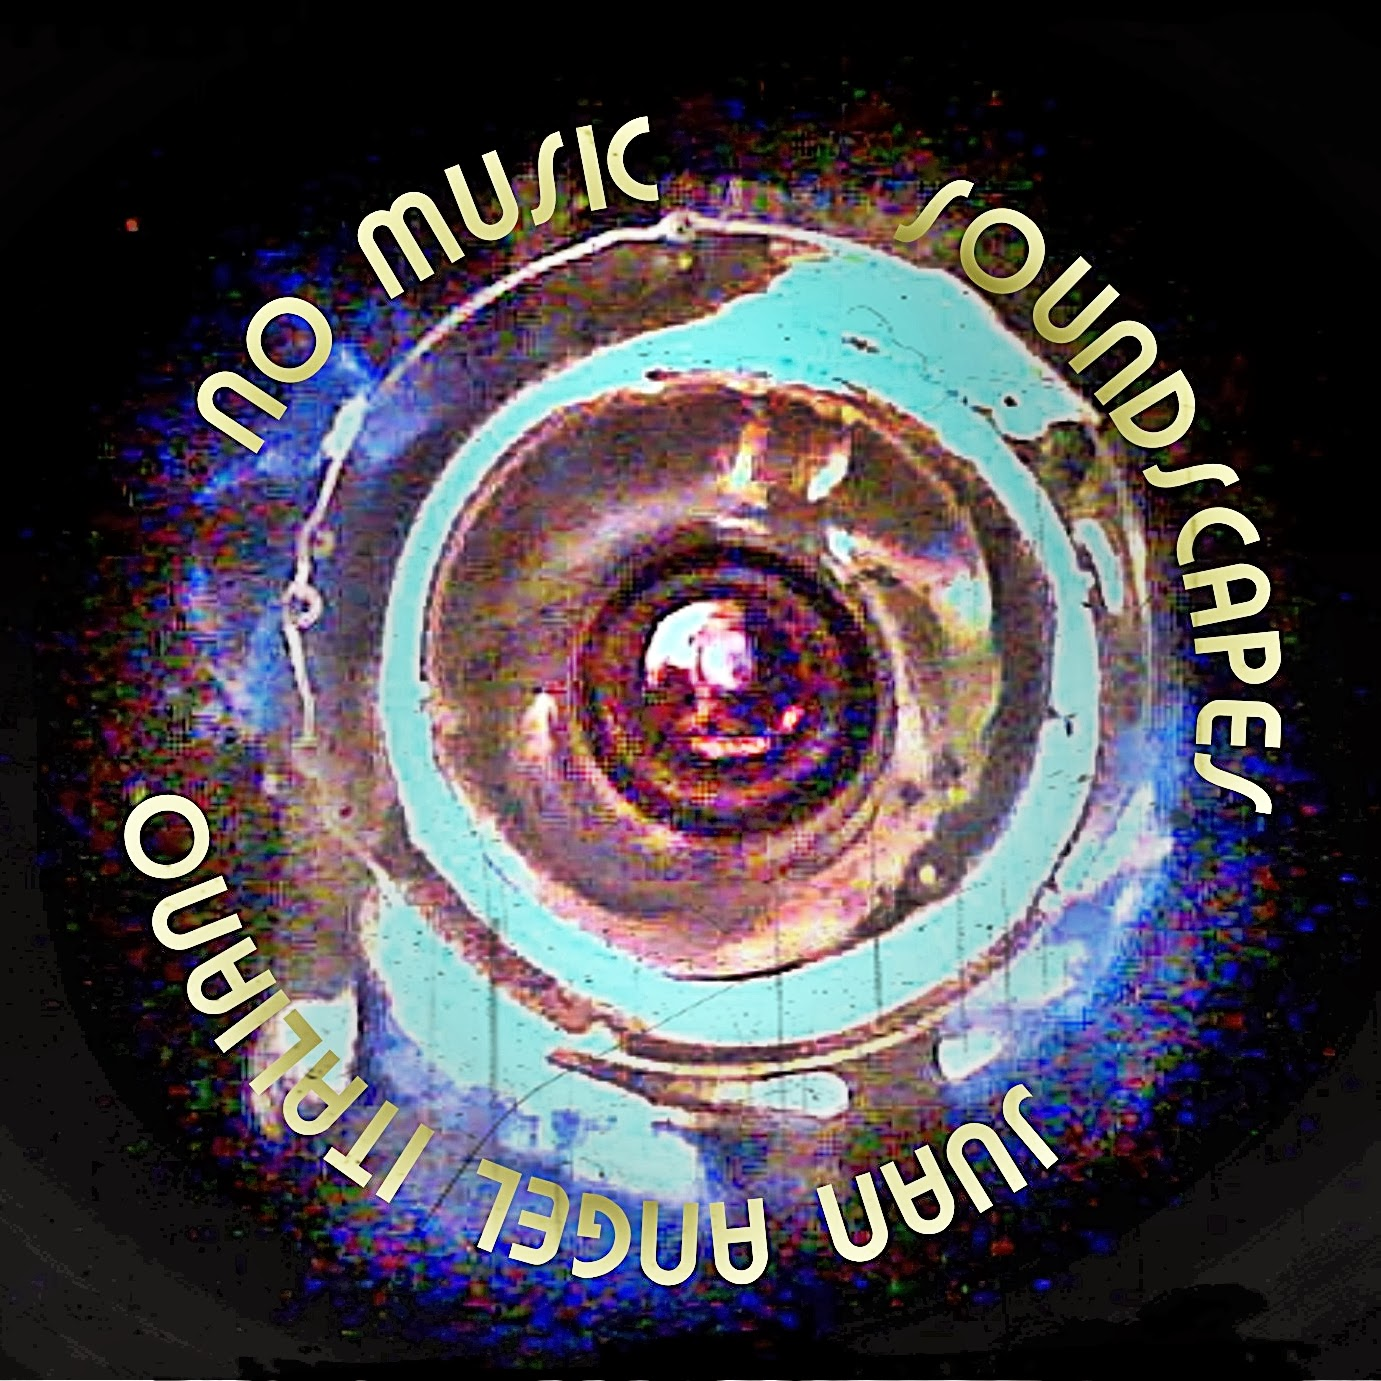 2013 - No music soundscapes